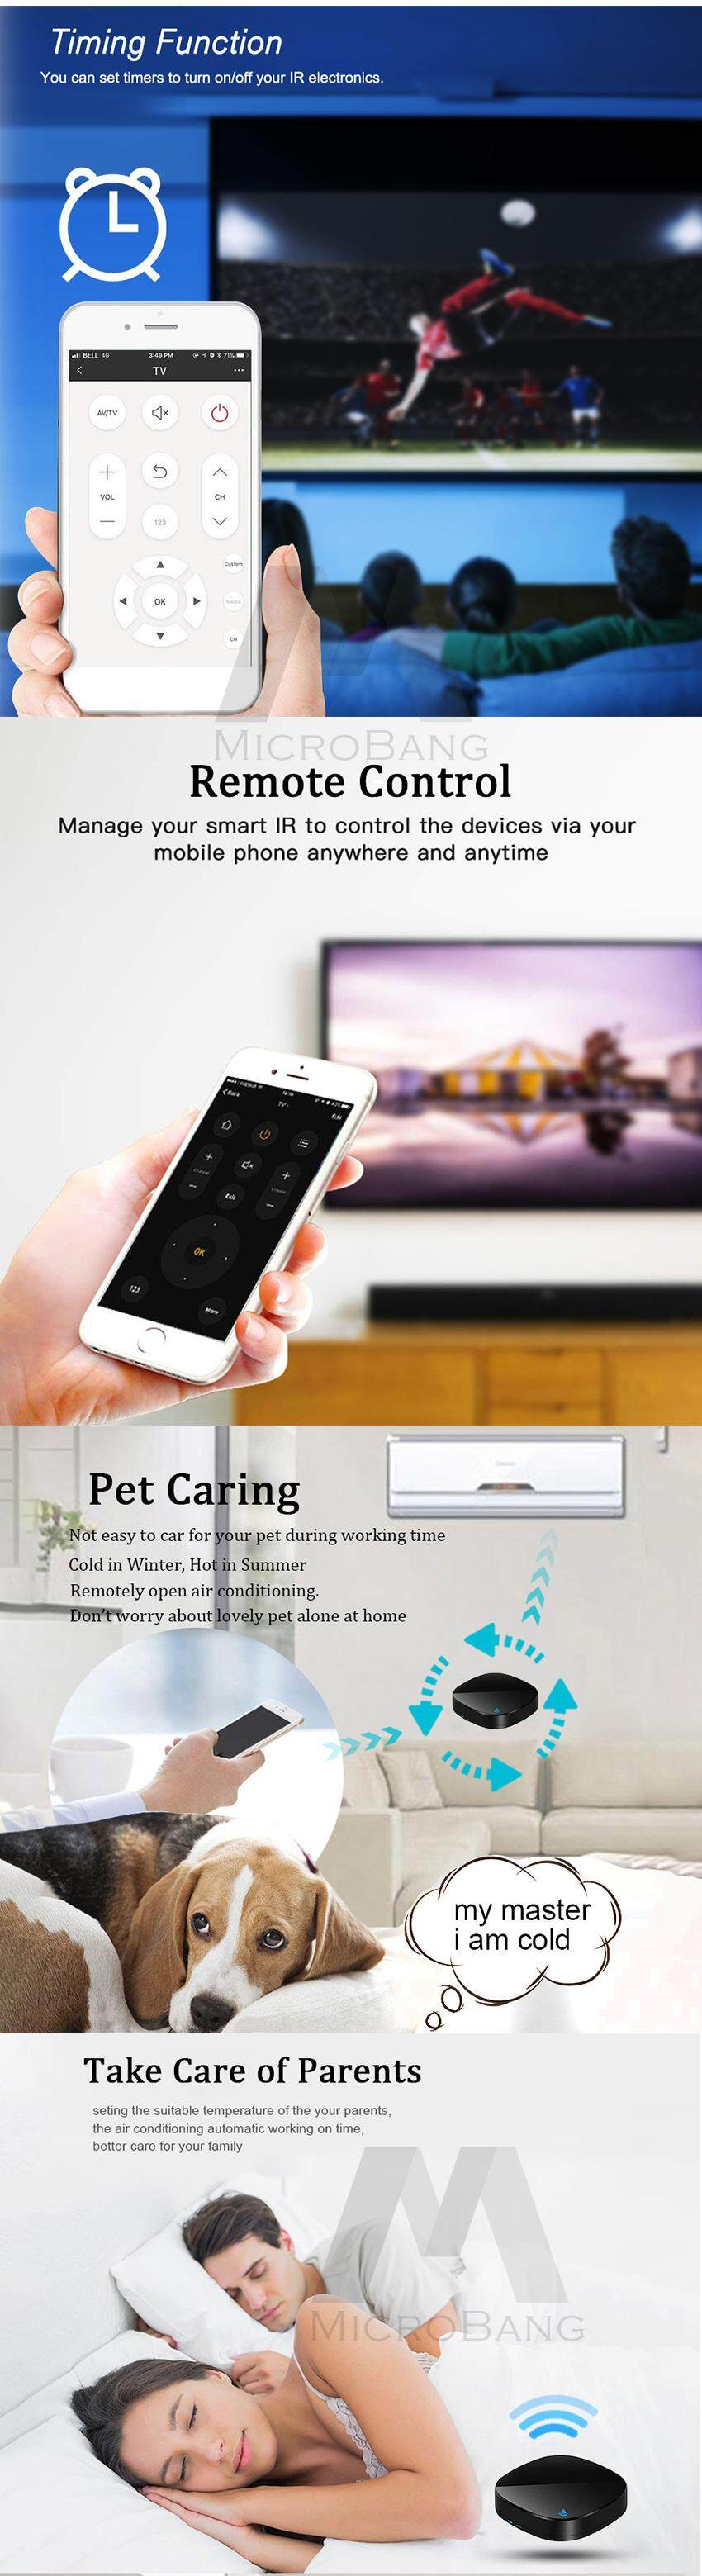 MicroBang WiFi Smart Home Control, Smart IR,TV Remote Controller, Make Your  Home Smart Through WiFi, Universal IR Remote Compatible with Alexa and